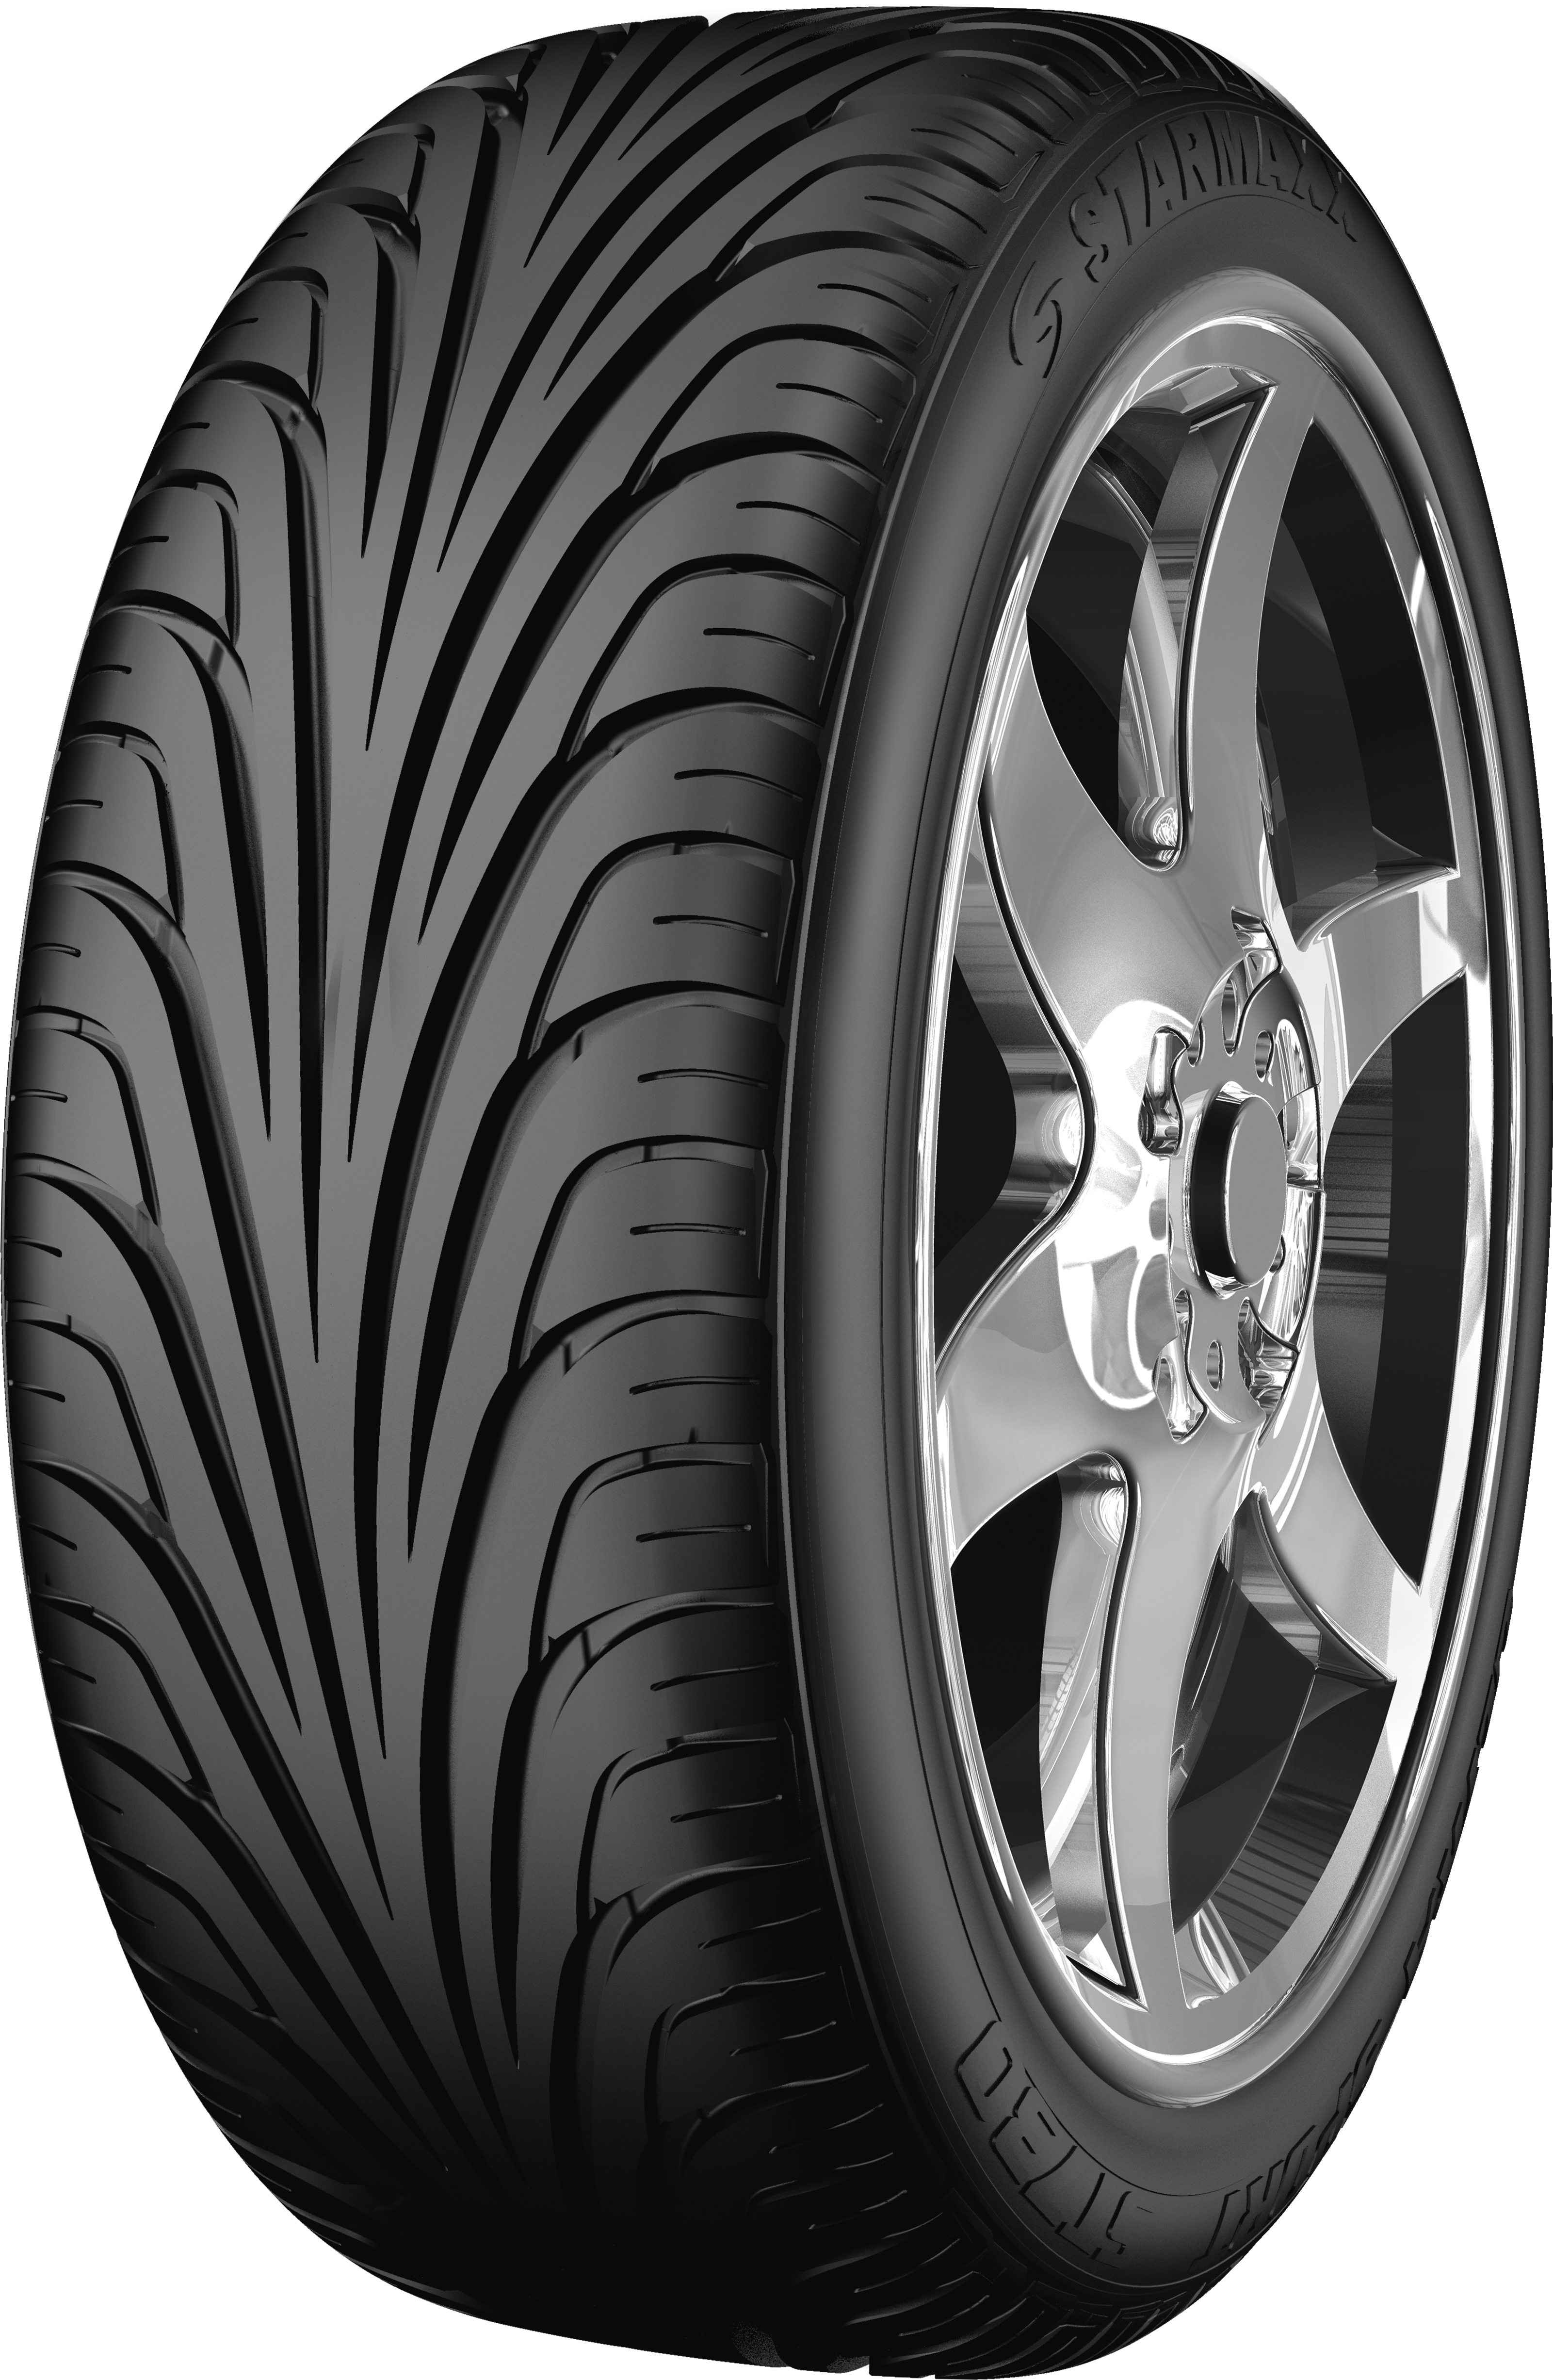 Anvelopa 265/35 ZR18 Ultrasport ST730 Reinforced (Starmaxx) photo